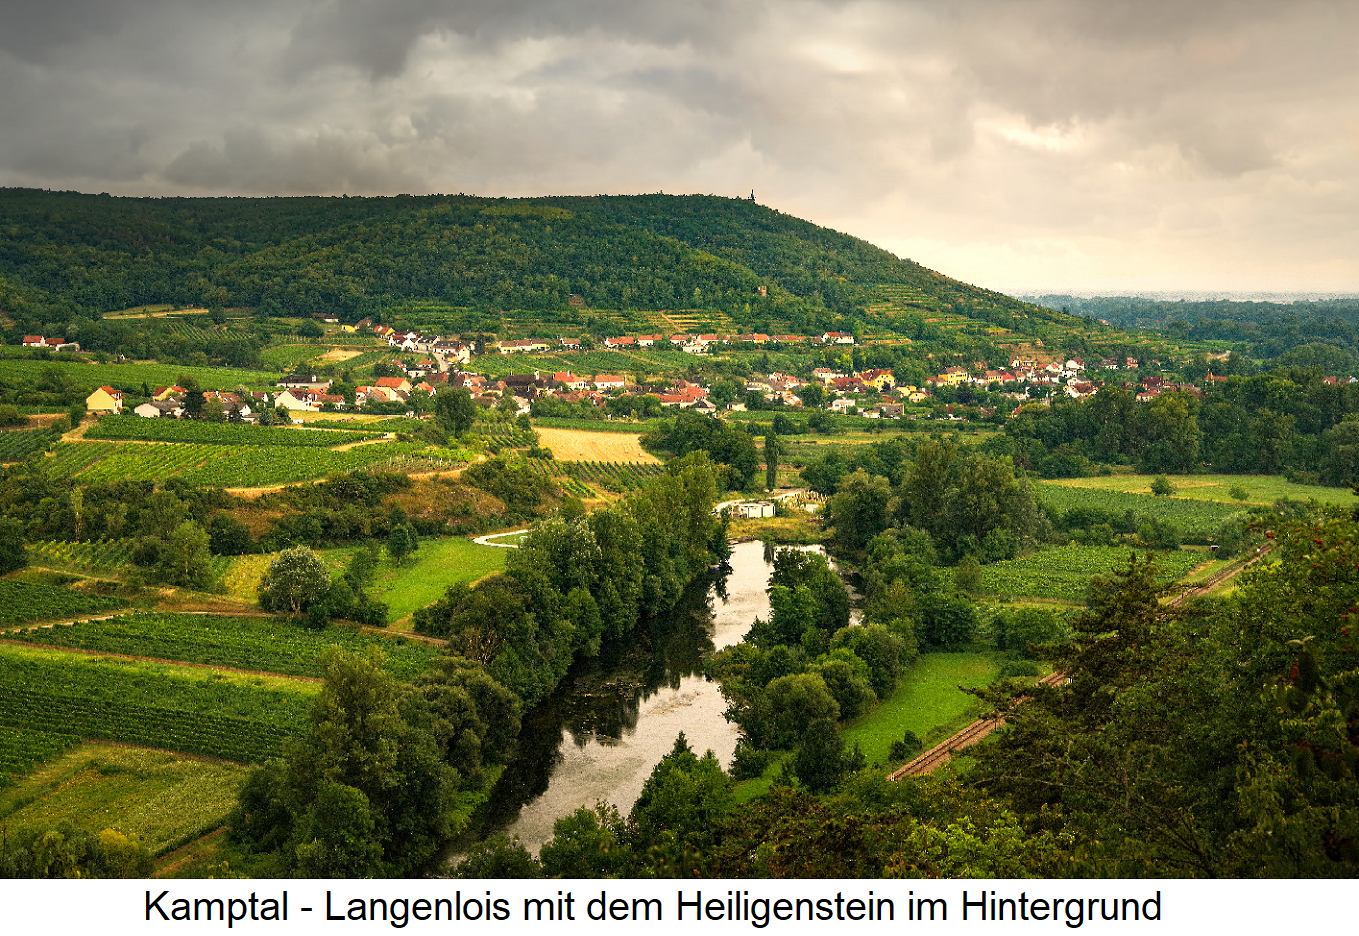 Kamptal - Langenlois with the Heiligenstein in the background